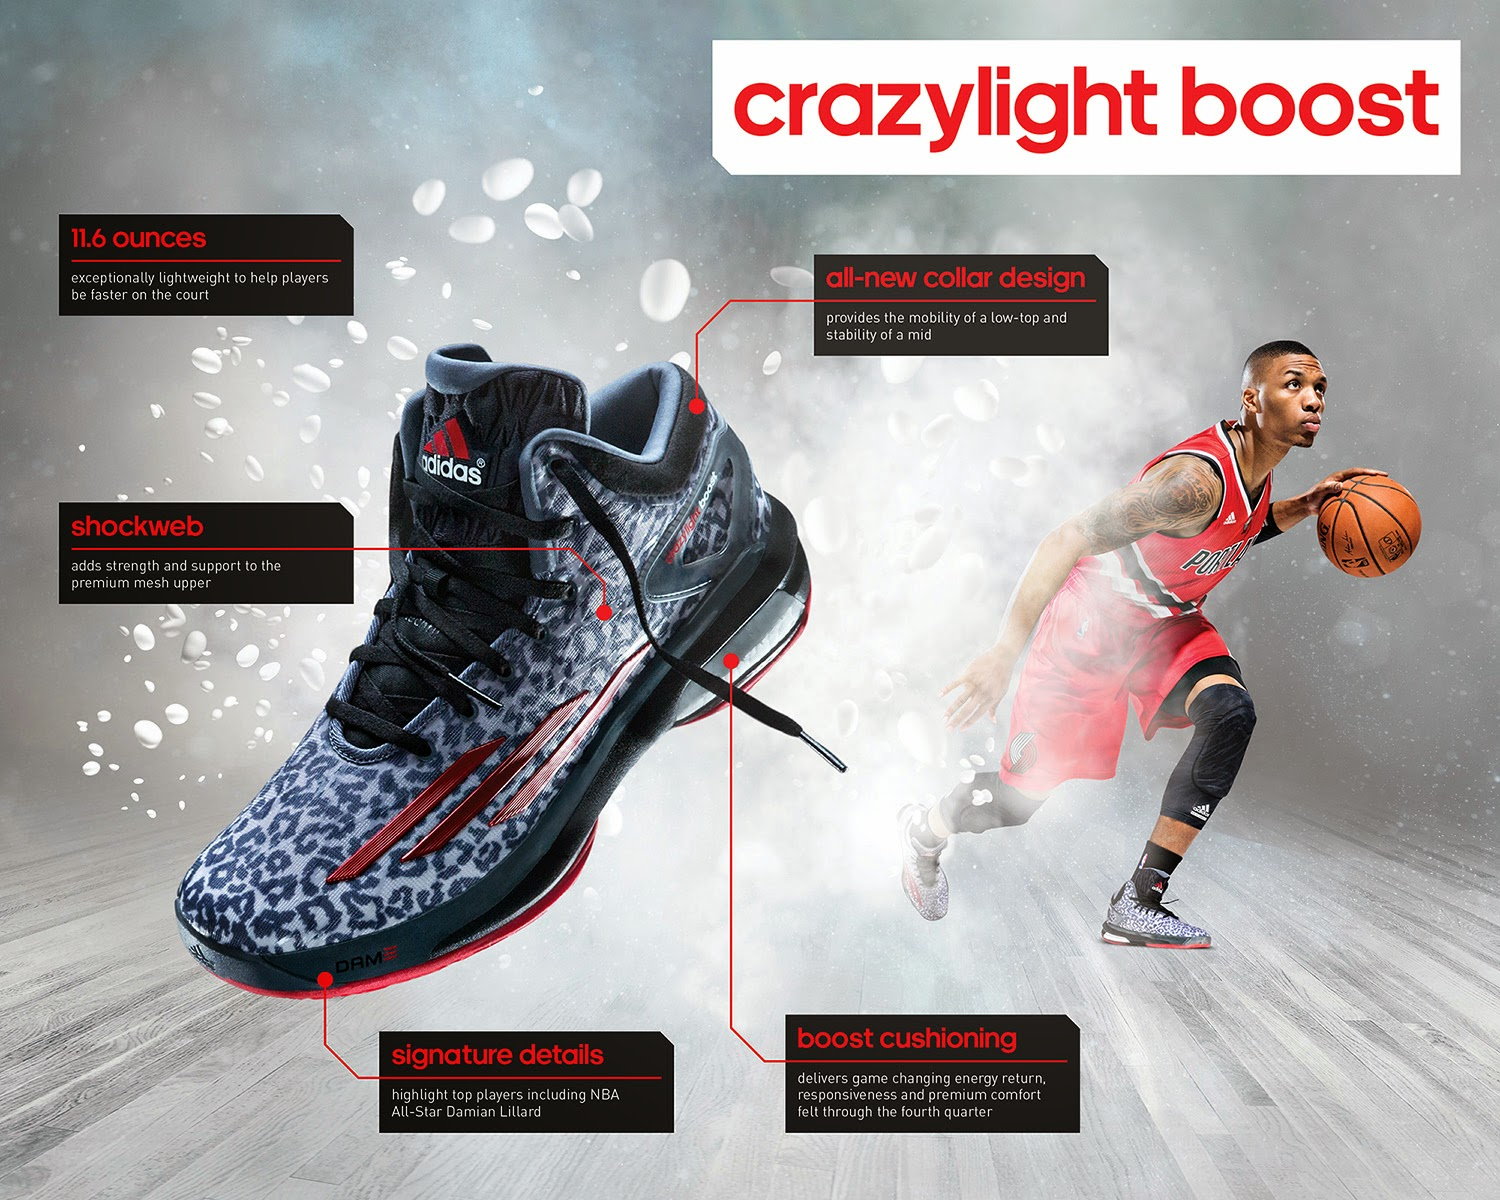 28a4986d9ba596 Manila Life  ADIDAS BRINGS GAME-CHANGING ENERGY TO THE COURT WITH ...